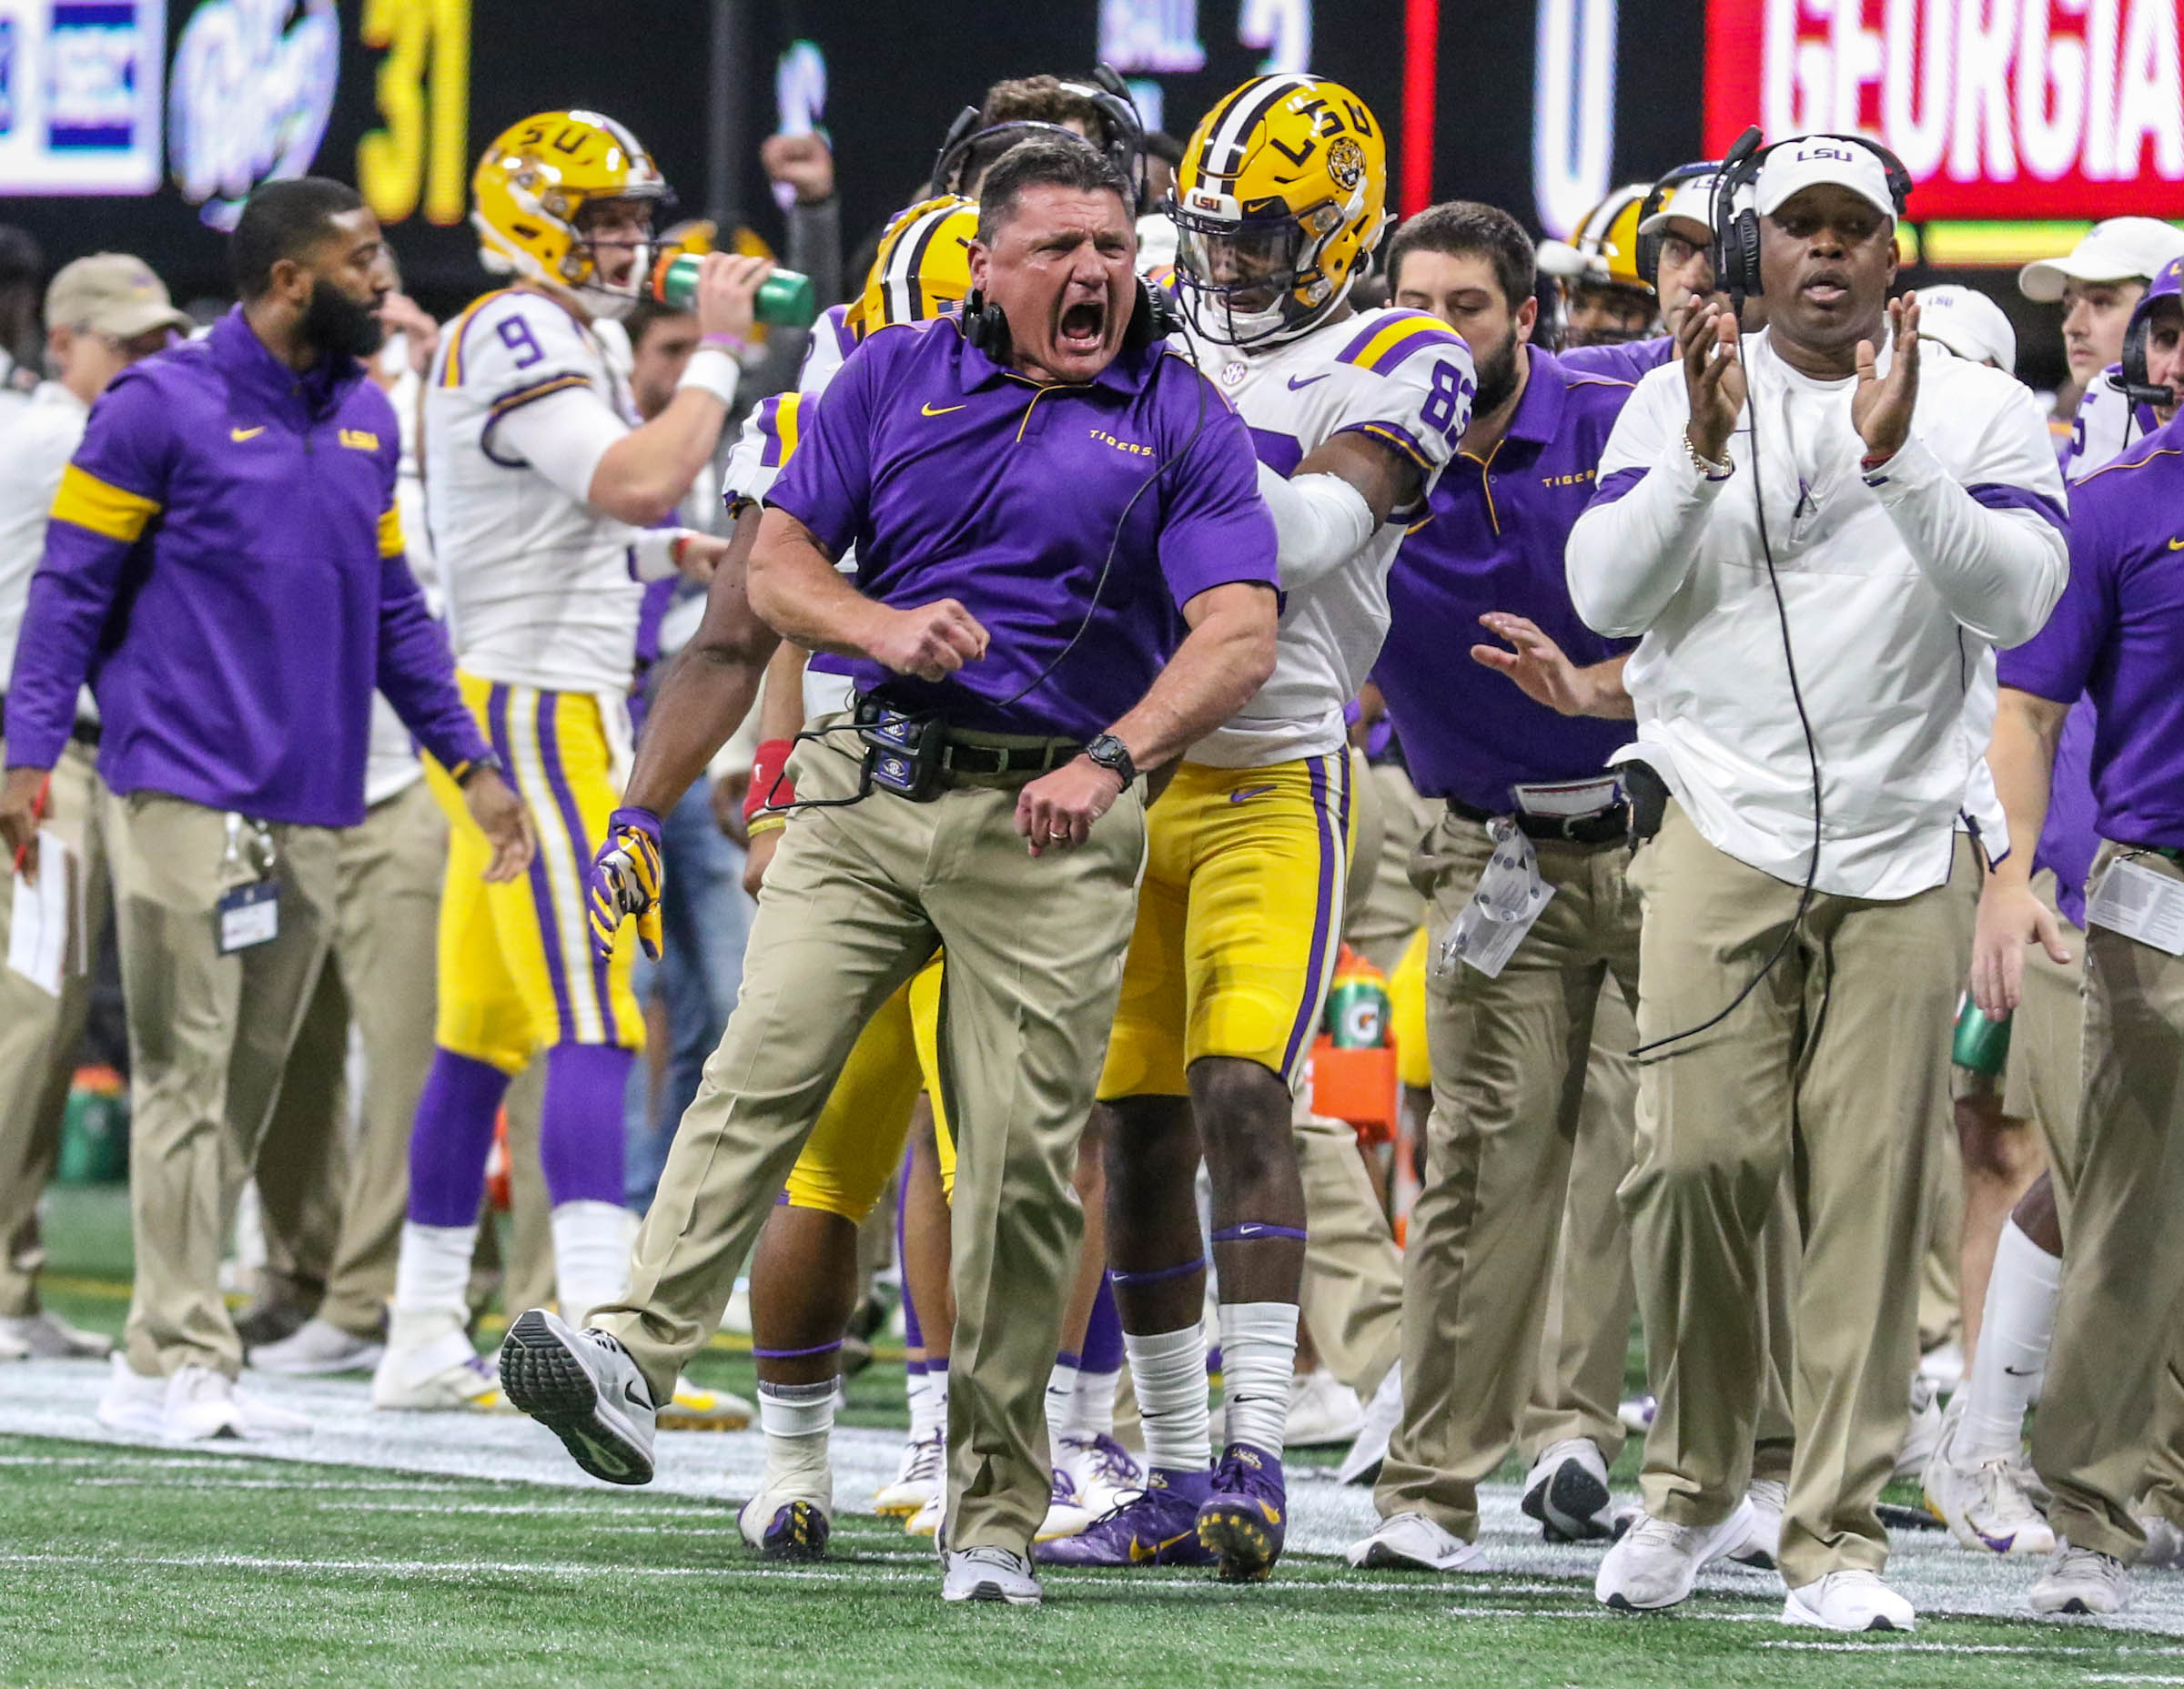 Linebacker Donte Starks Tossed Off Lsu Team By Coach O